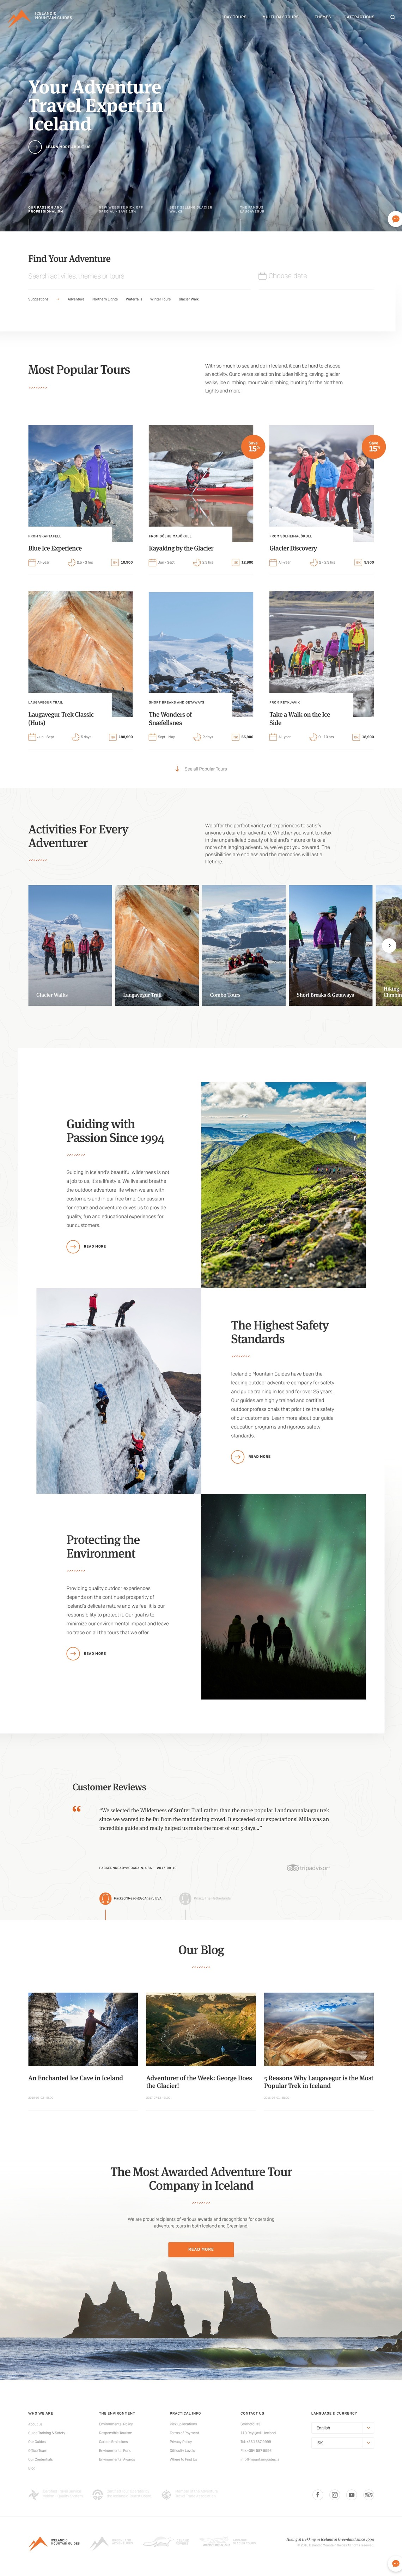 Icelandic Mountain Guides - Your Adventure Expert in Iceland